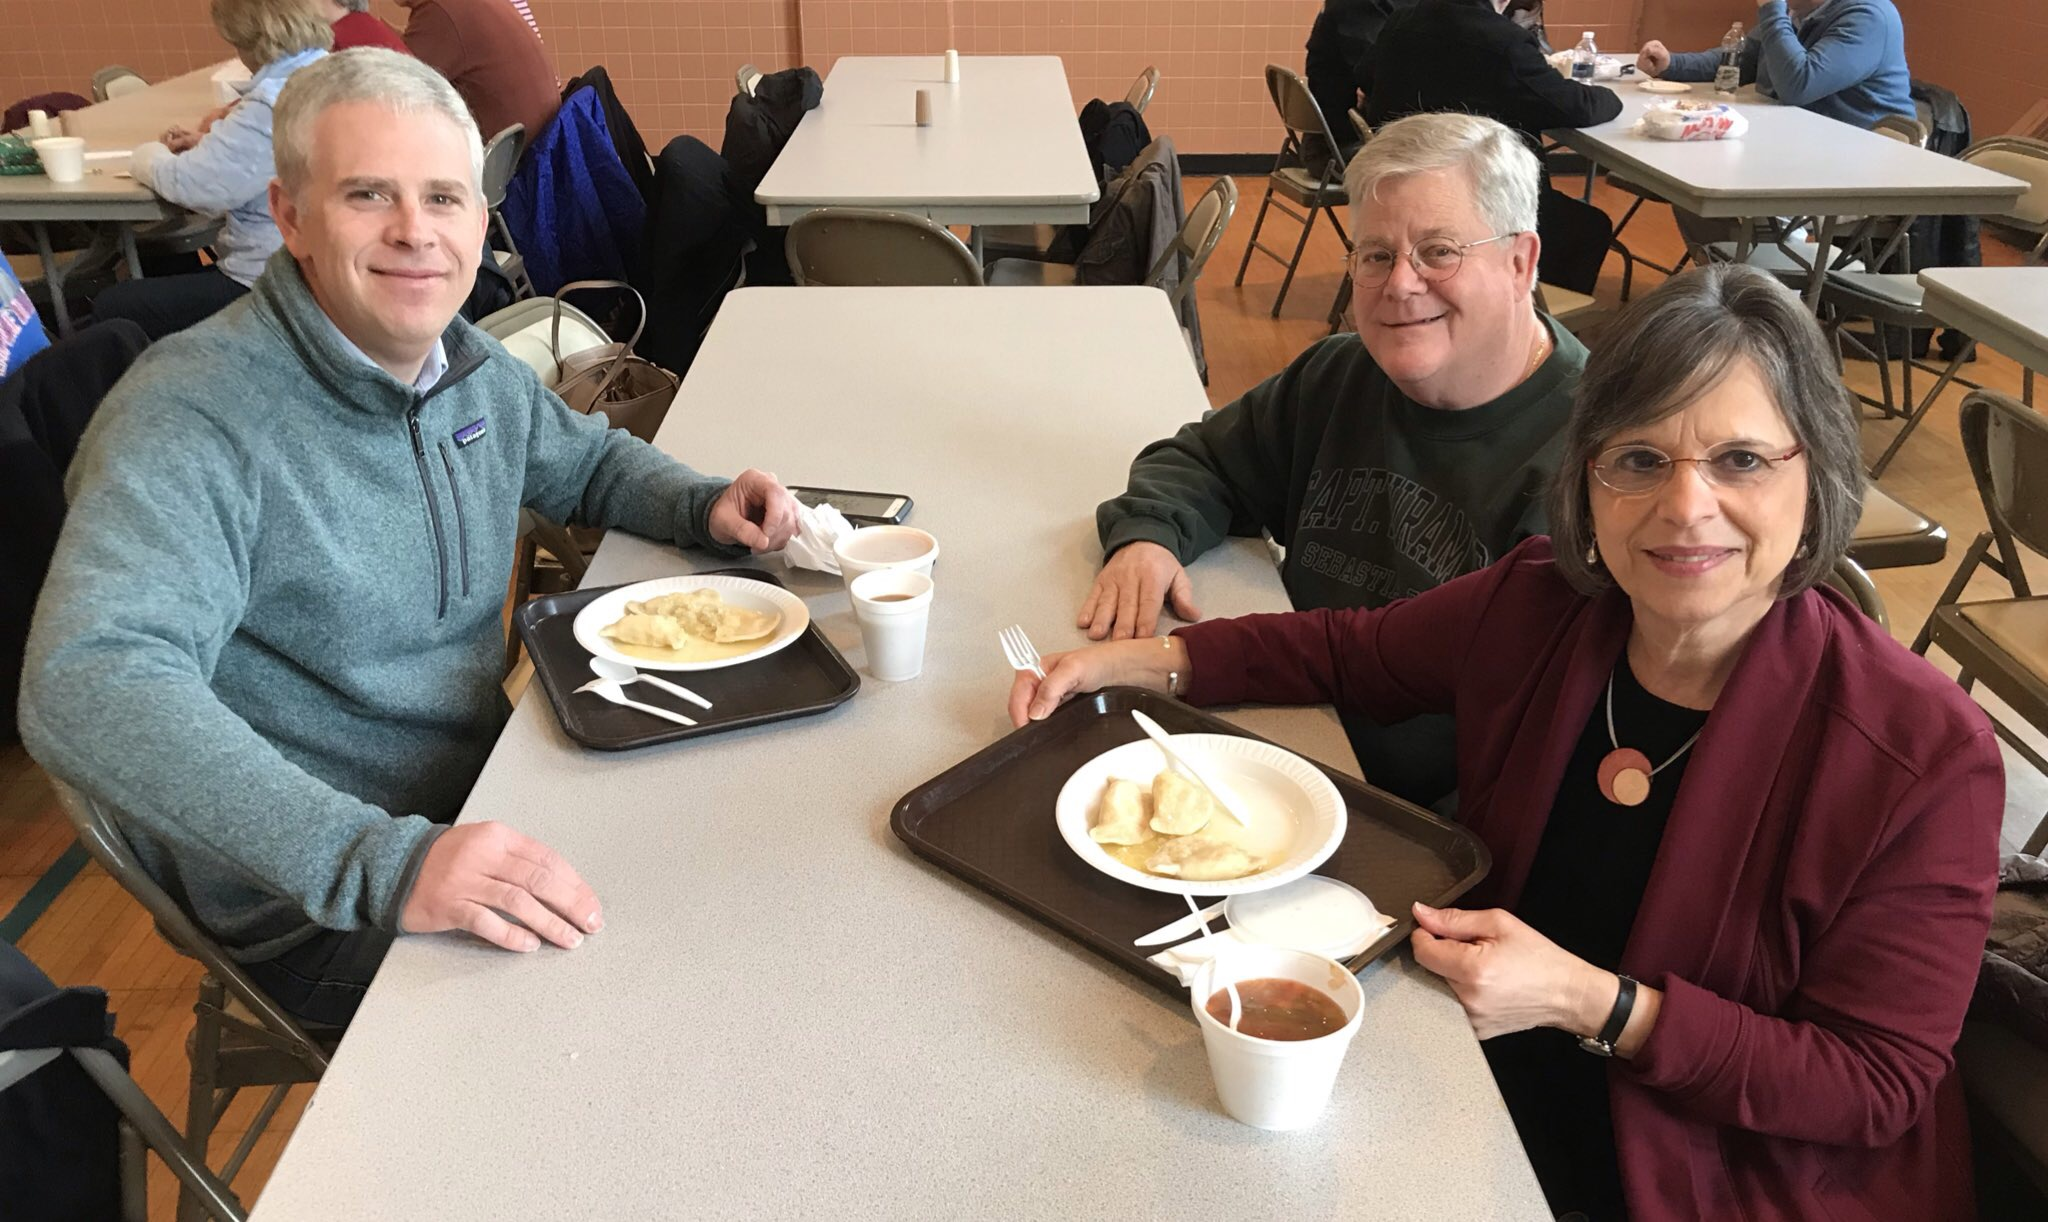 March 22, 2019 – A Lenten tradition: Assemblywoman Lupardo joins County Executive Jason Garnar and former County Executive Pat Brennan for St. Michael's annual pirohi lunch.